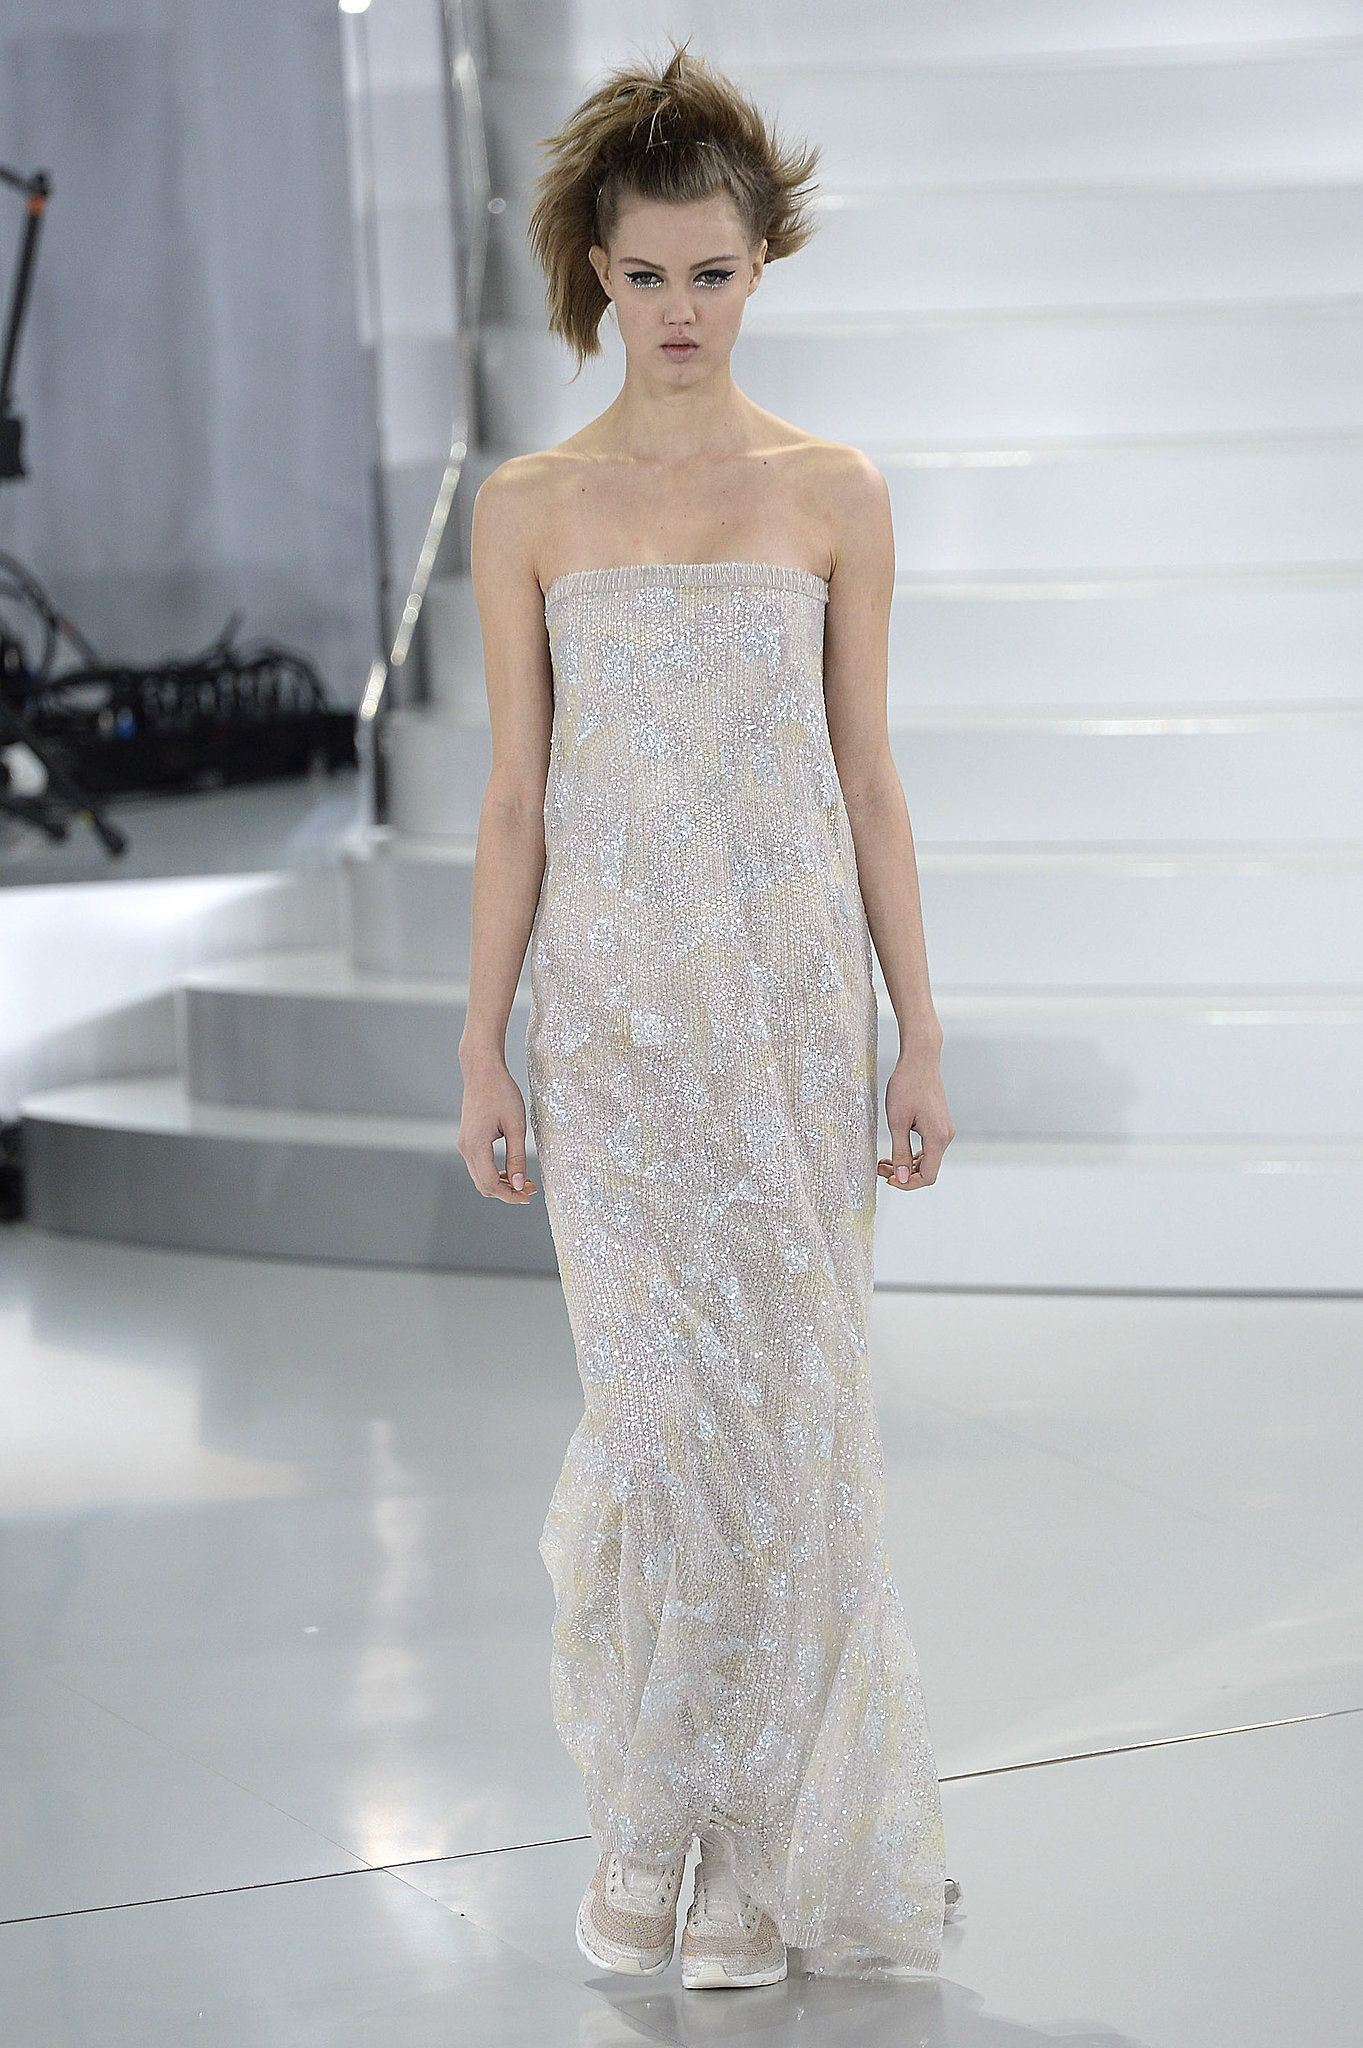 Anne Hathaway: Chanel Haute Couture Spring 2014 | Burka,hijab ...